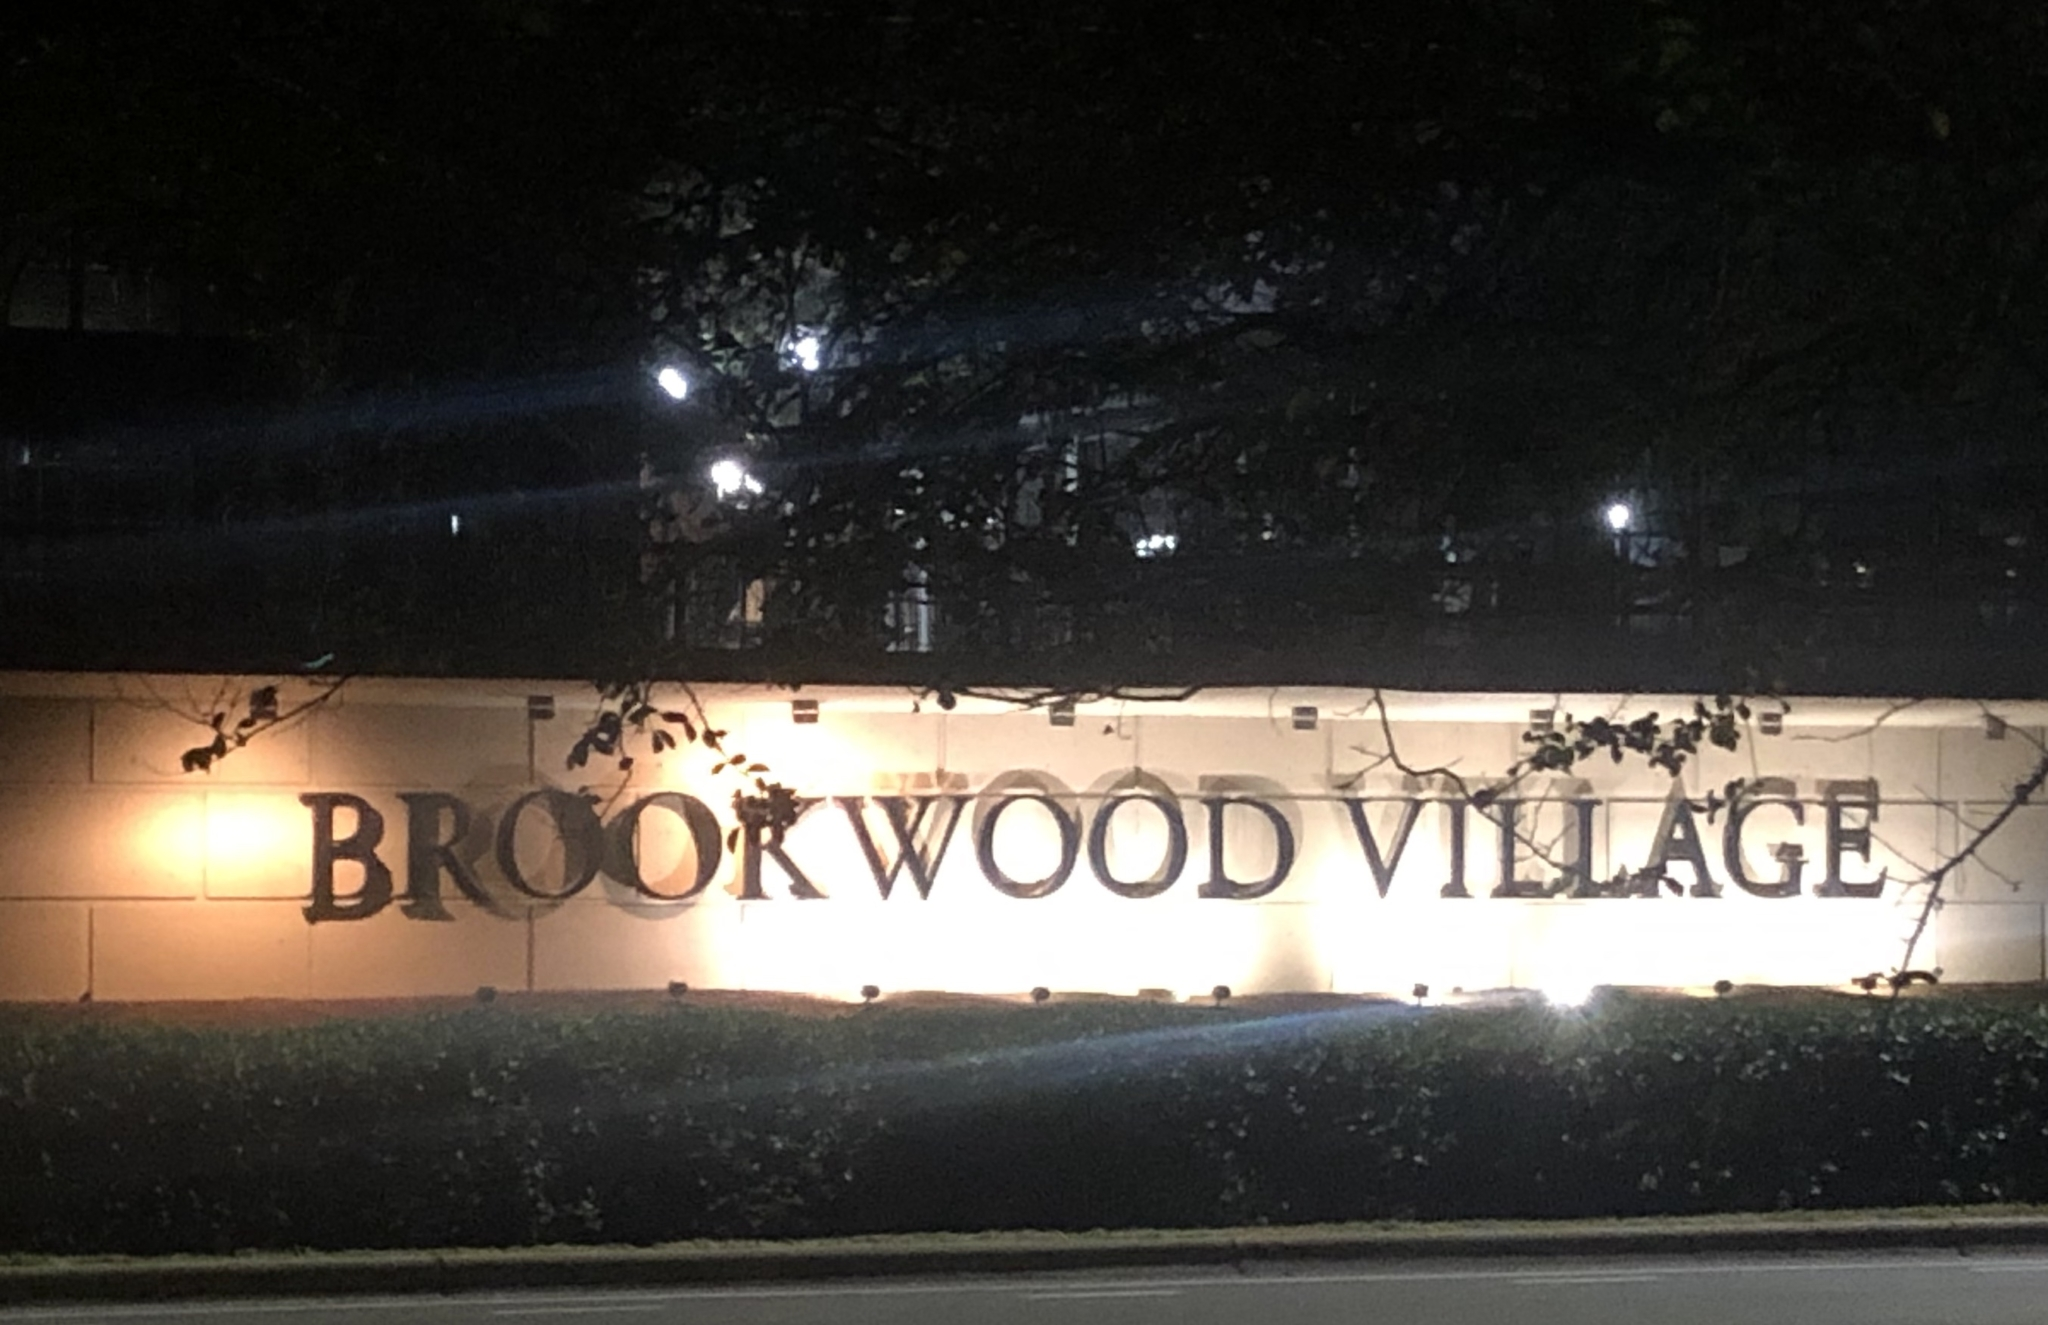 Most of Brookwood Village acquired for M, ready for rebirth